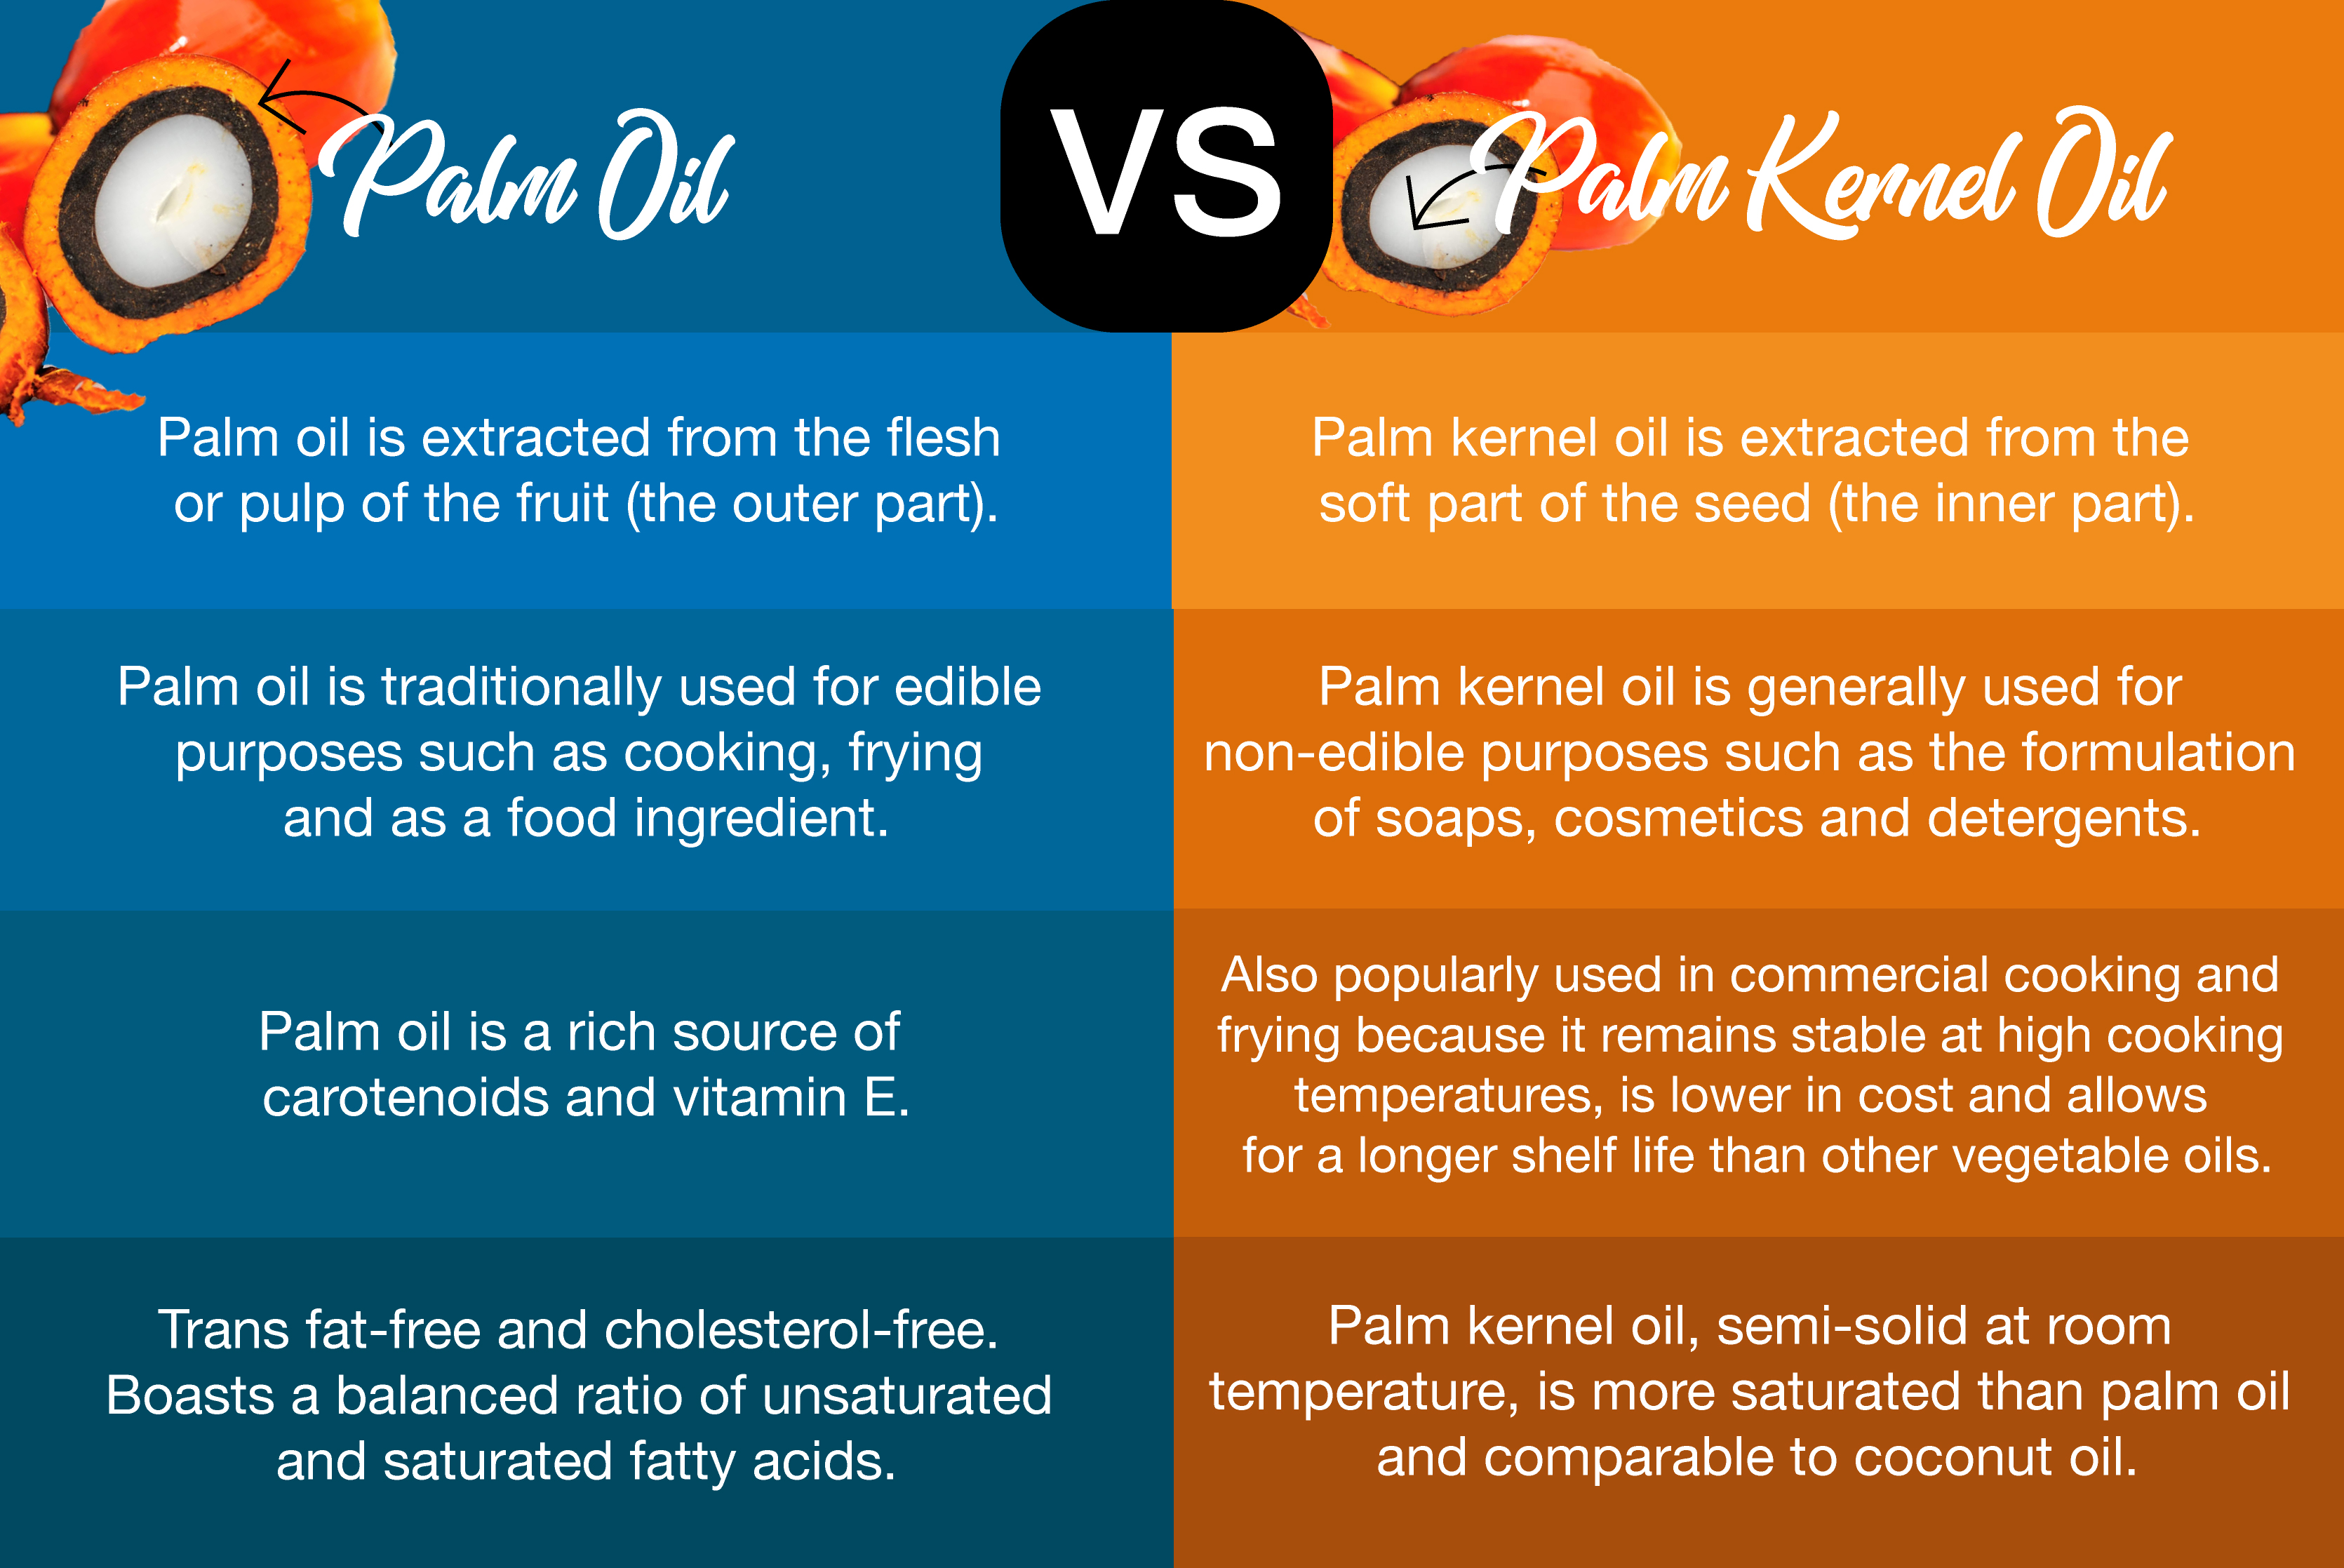 Malaysiakini Palm Oil Vs Palm Kernel Oil What S The Difference